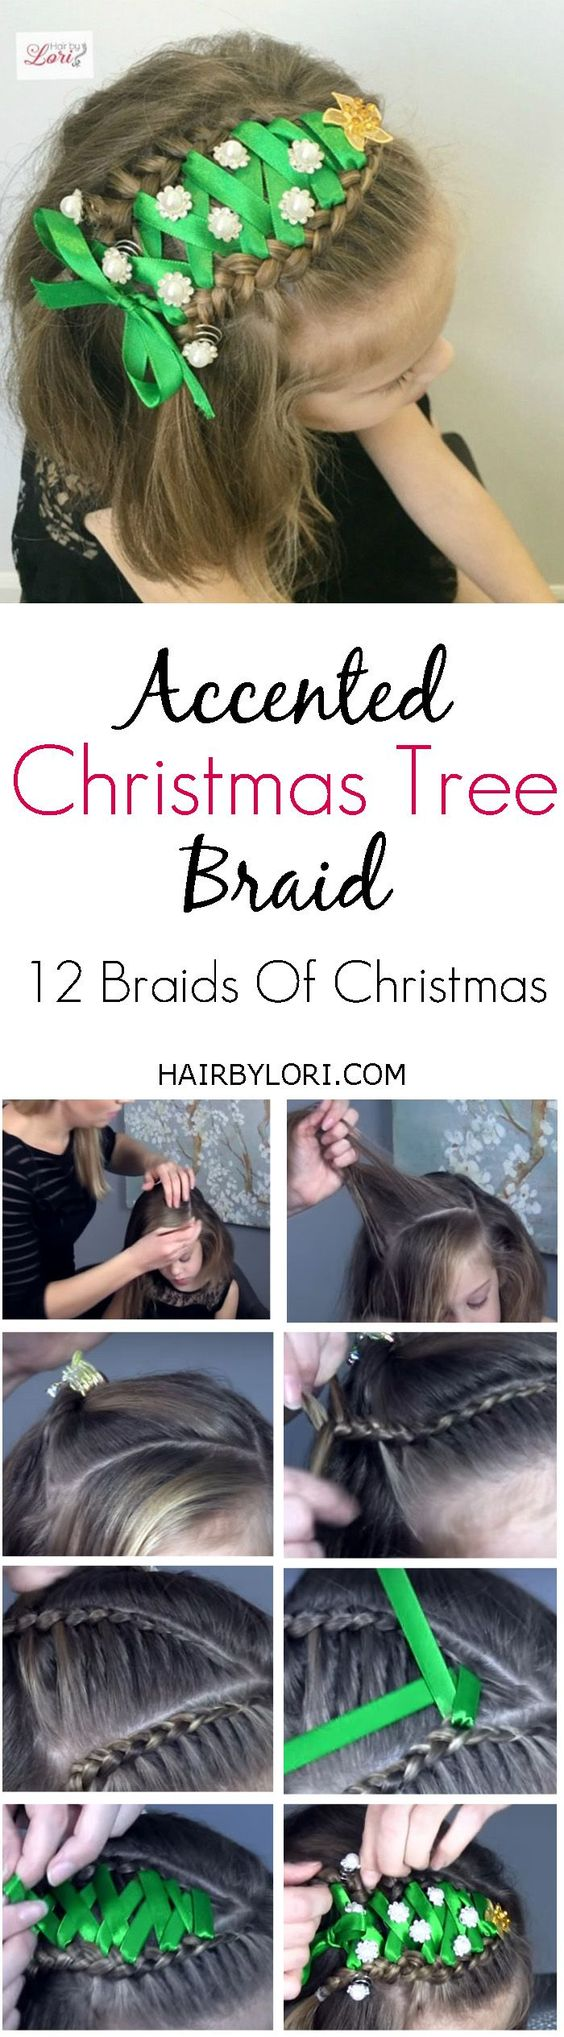 Video Tutorial: The Accented Christmas Tree Braid. A fun braid part of my 12 Braids Of Christmas Series.